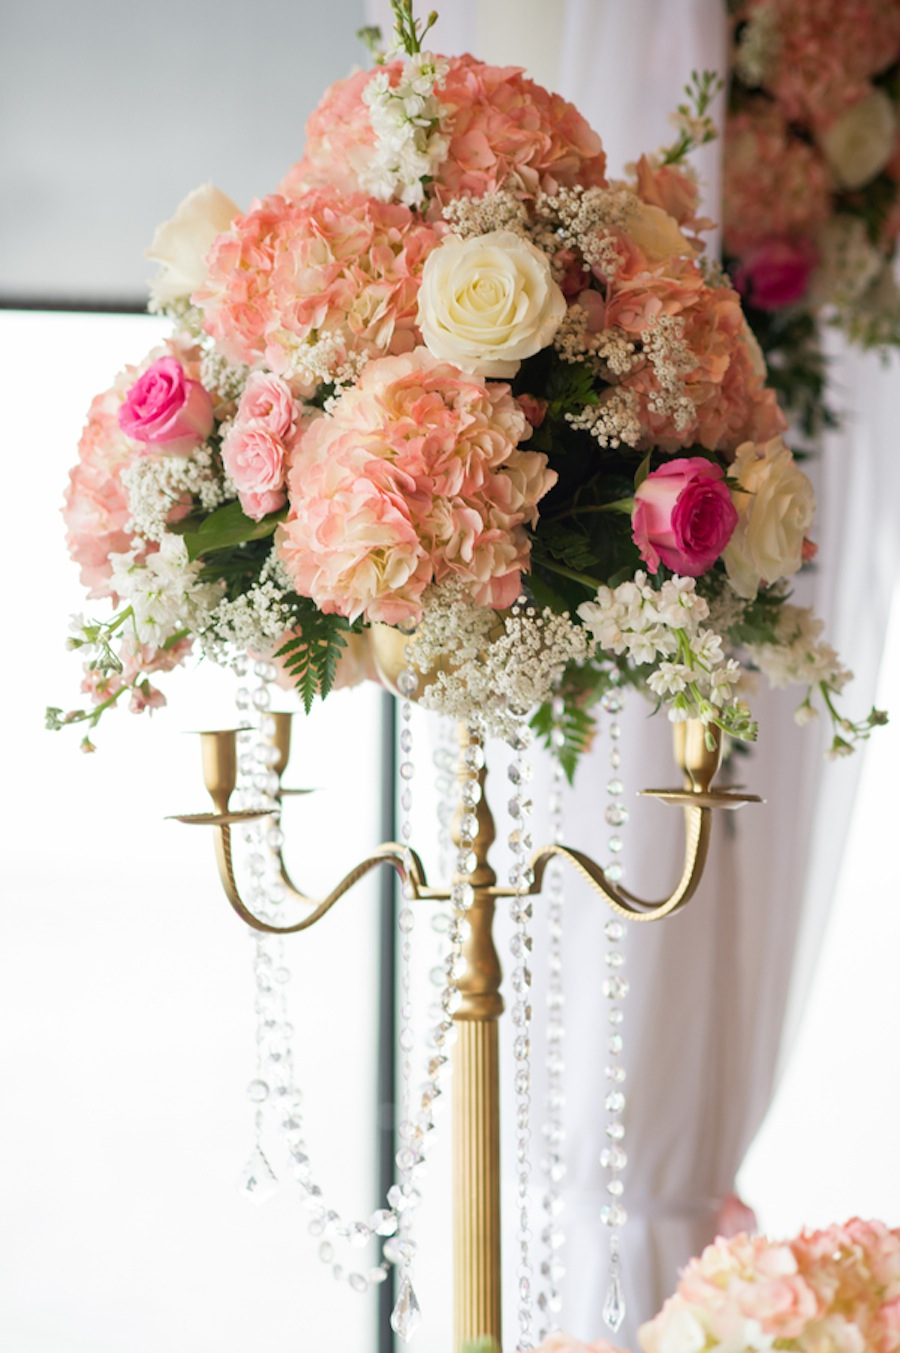 Tall Pink and White Wedding Centerpiece with Gold Candelabra and Rhinestones | Tampa Wedding Floral Designer Northside Florist